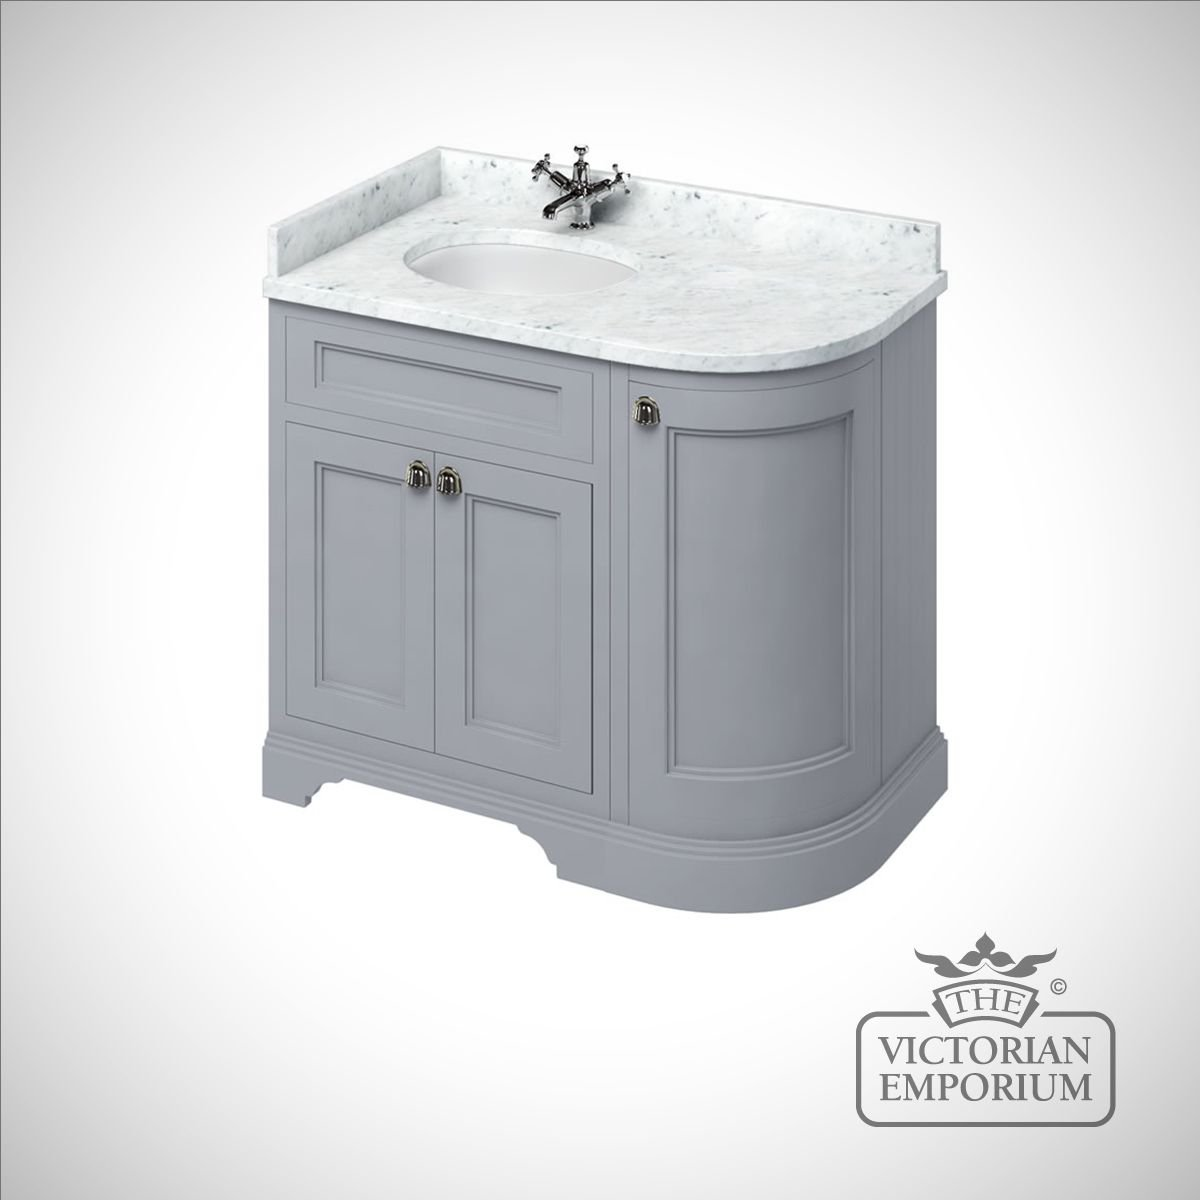 Freestanding 100cm Wide Curved Corner Vanity Unit With Drawers Worktop And 1 Inset Basin